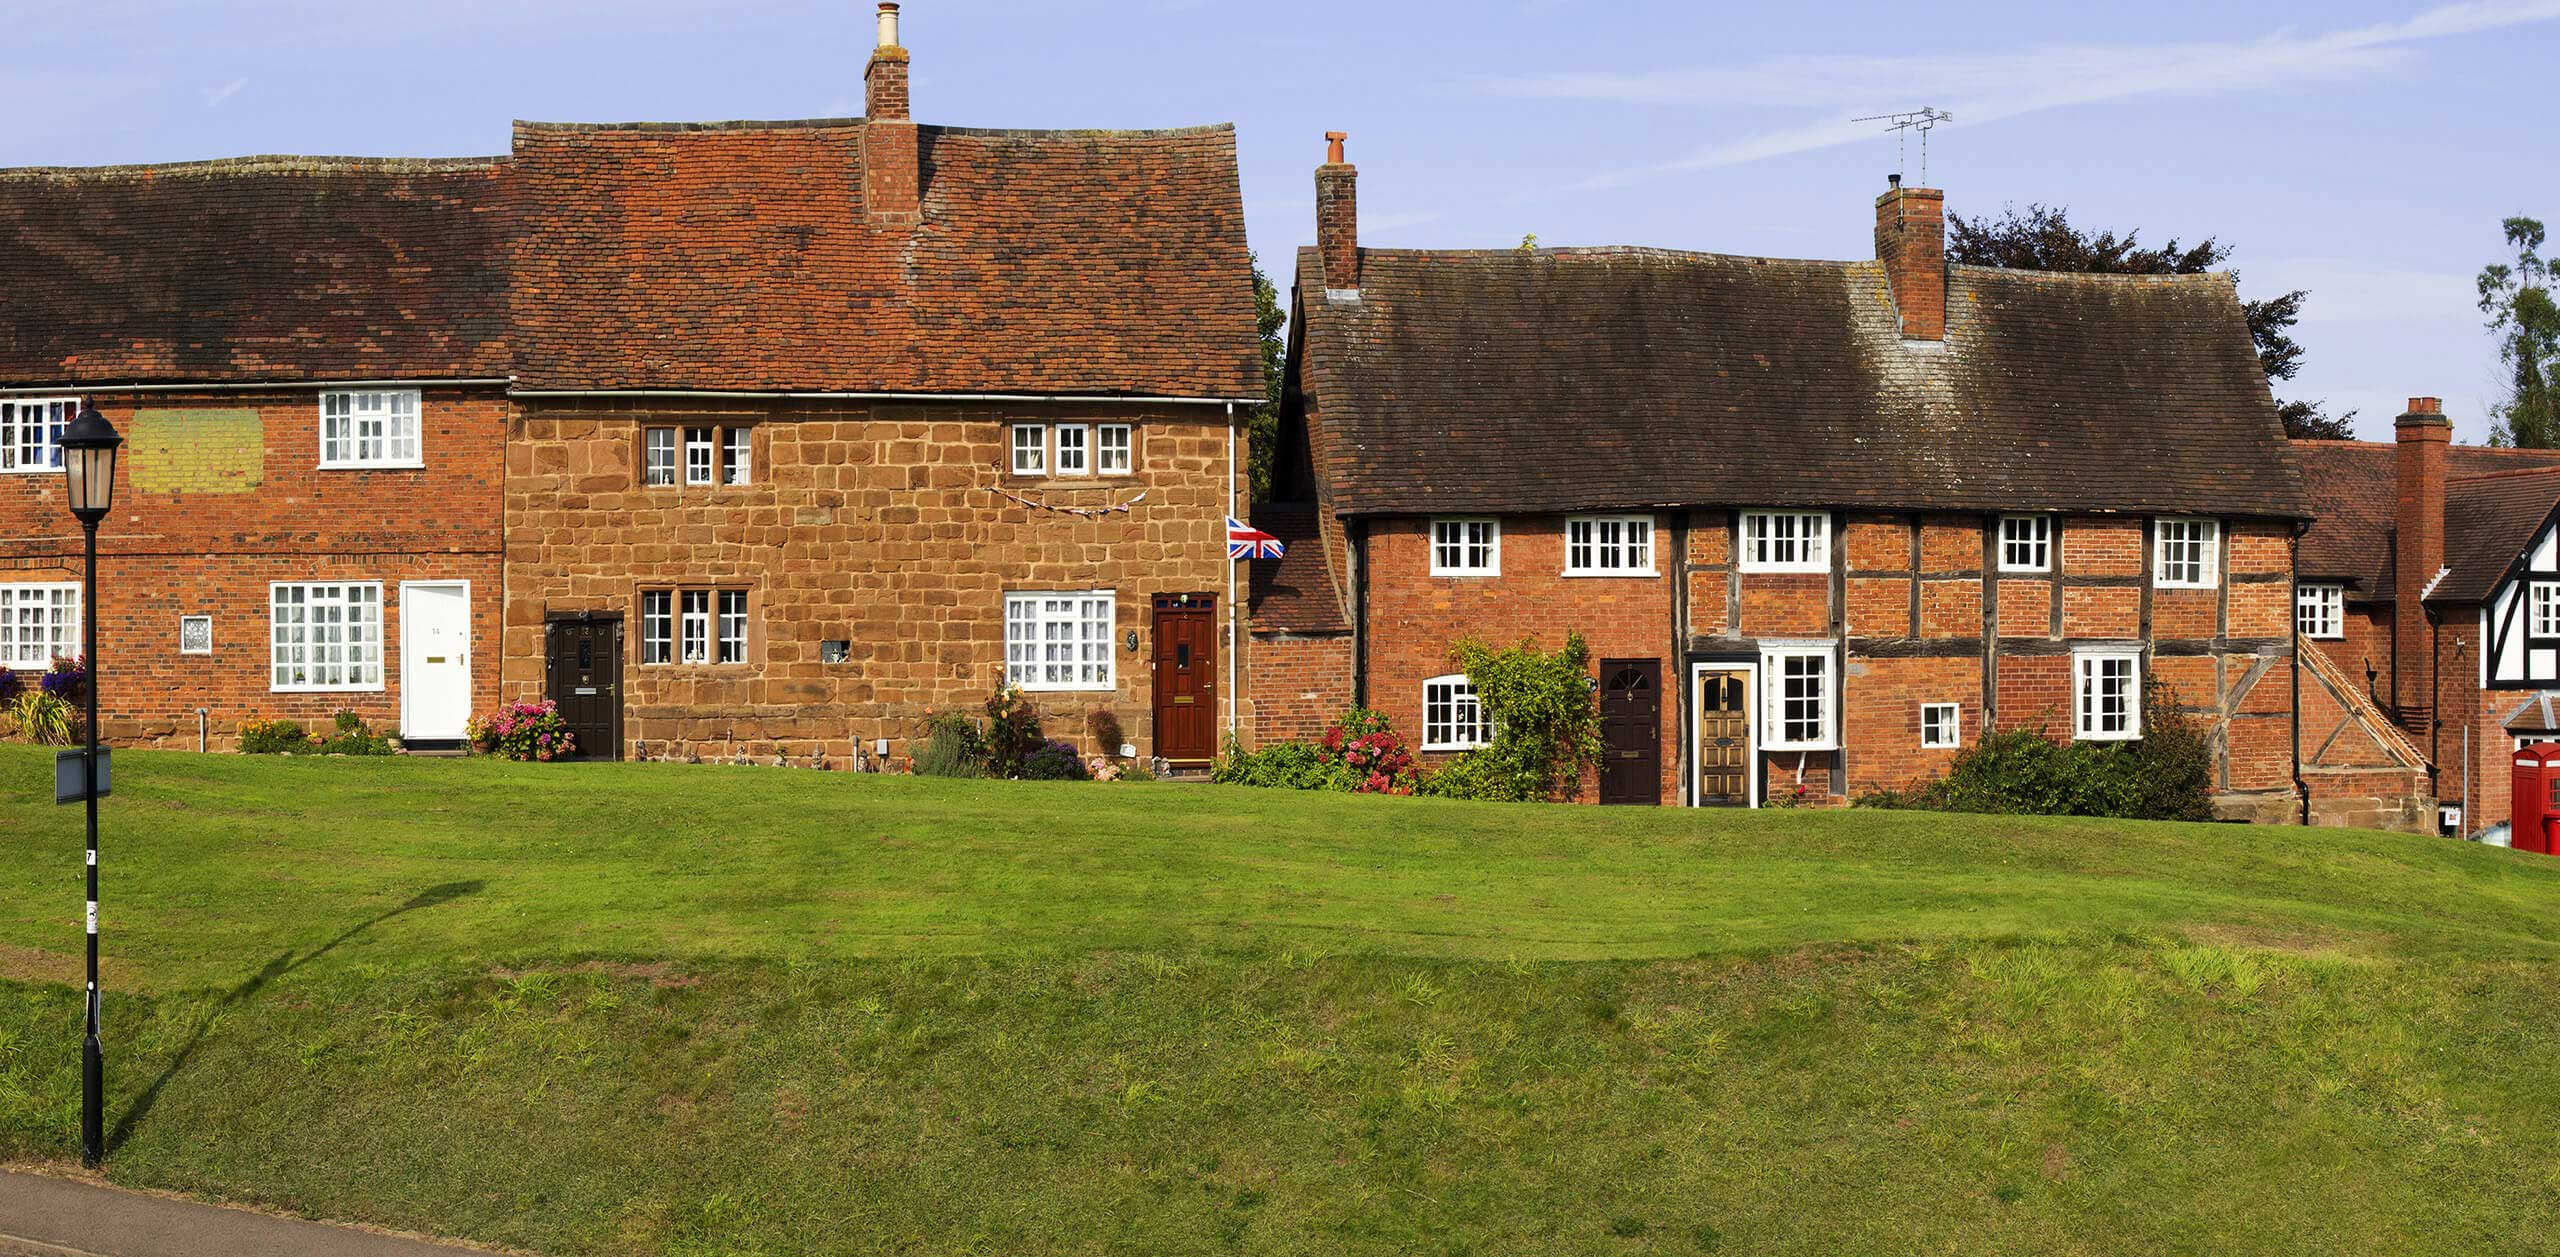 Cottages in Kenilworth